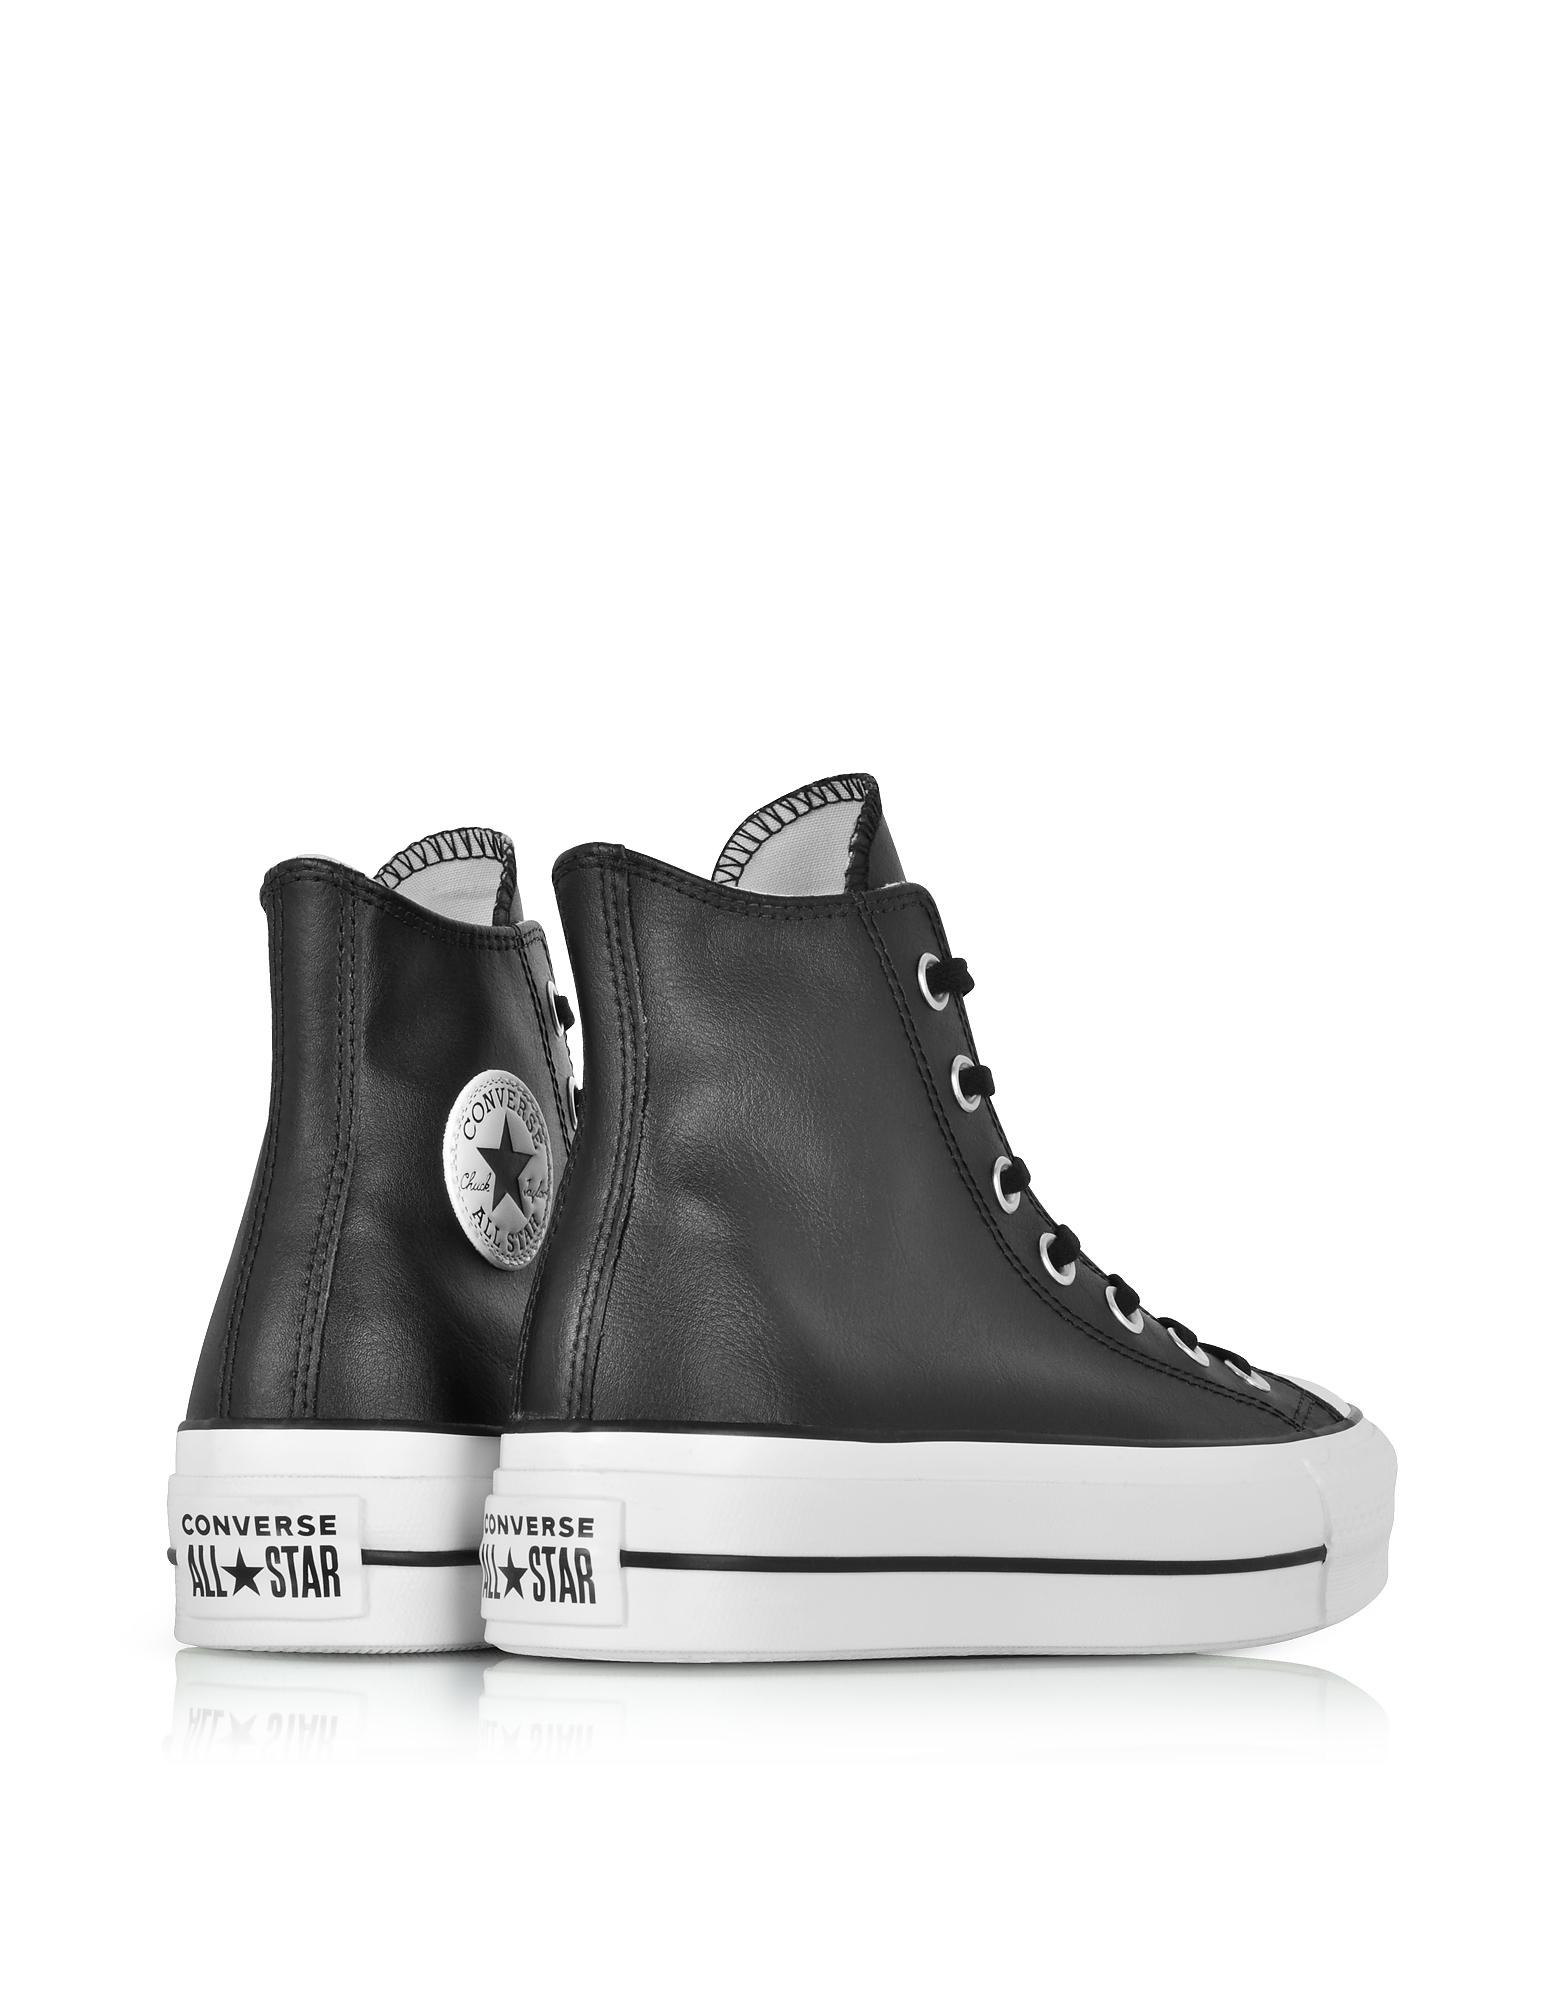 2converse chuck taylor all star lift leather high top